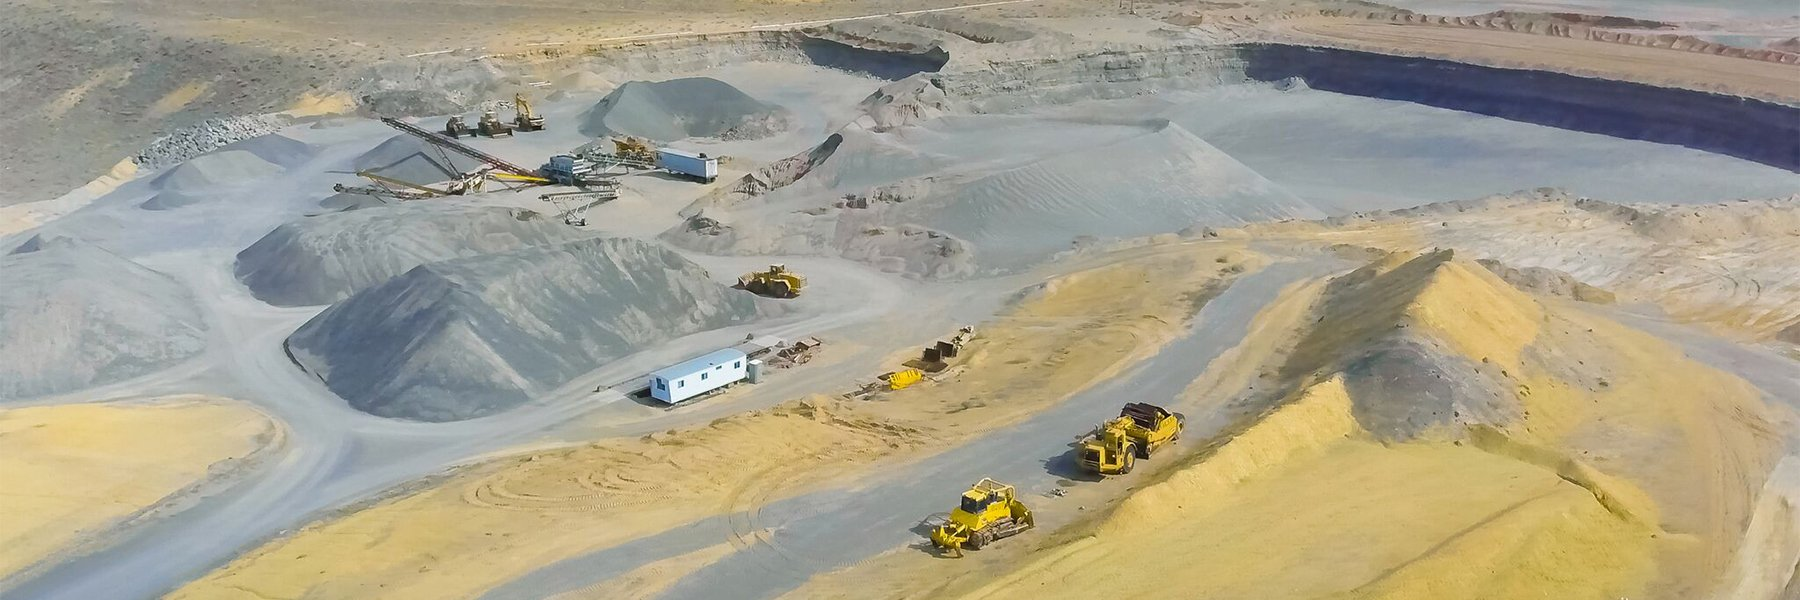 Benson Bros machinery in gravel pit